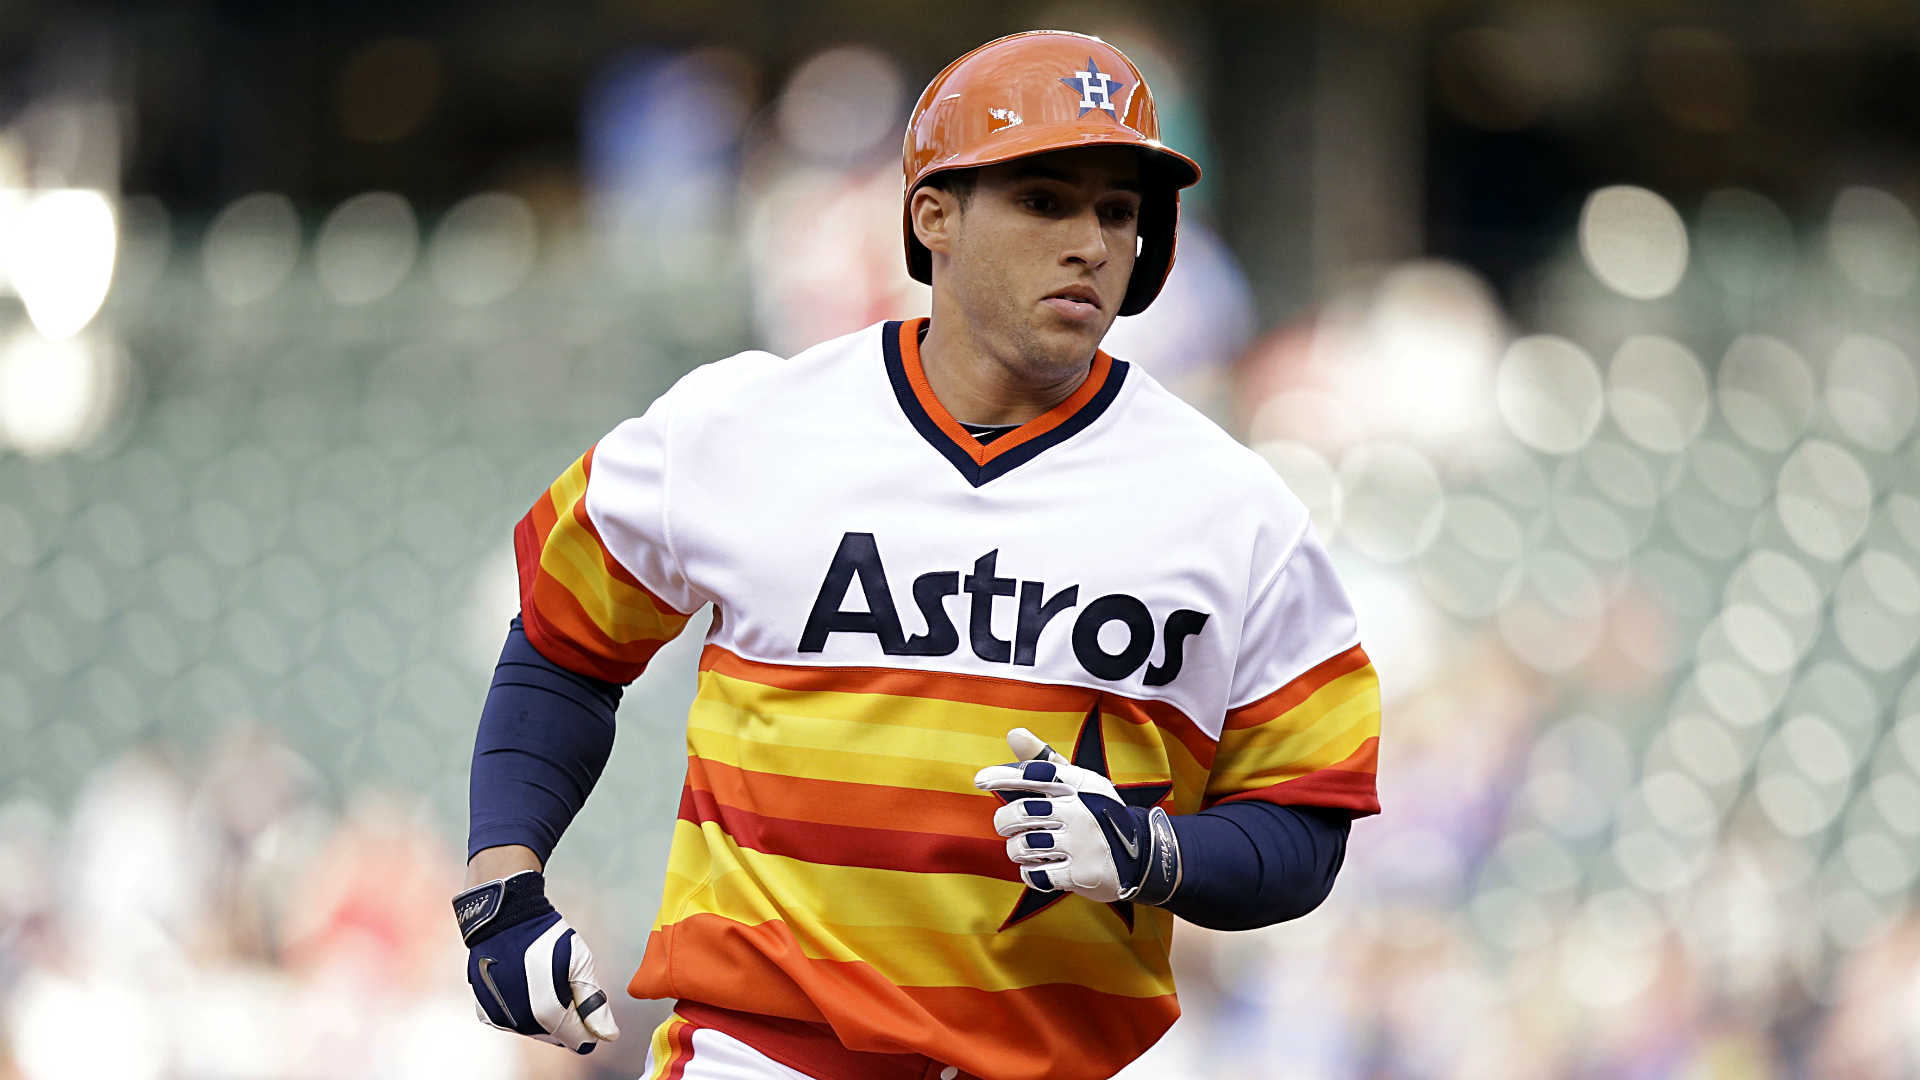 Hitter Rankings: Astros' Springer moves up fast